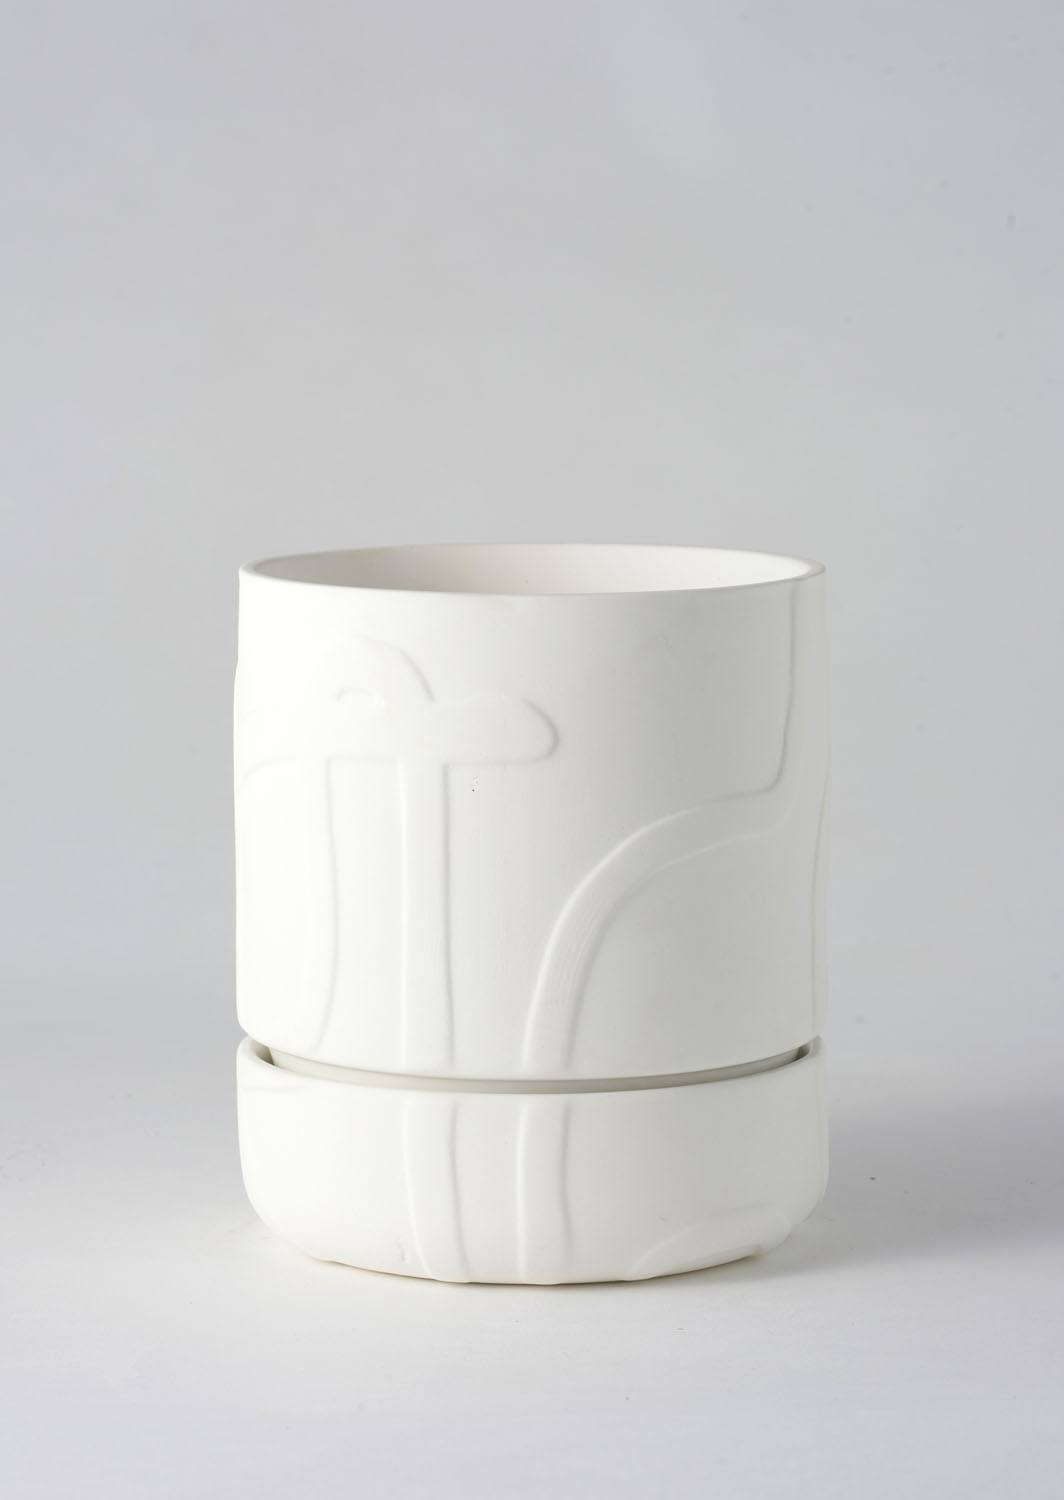 Angus & Celeste Abstract Relief Plant Pot - Brush Line Thick White